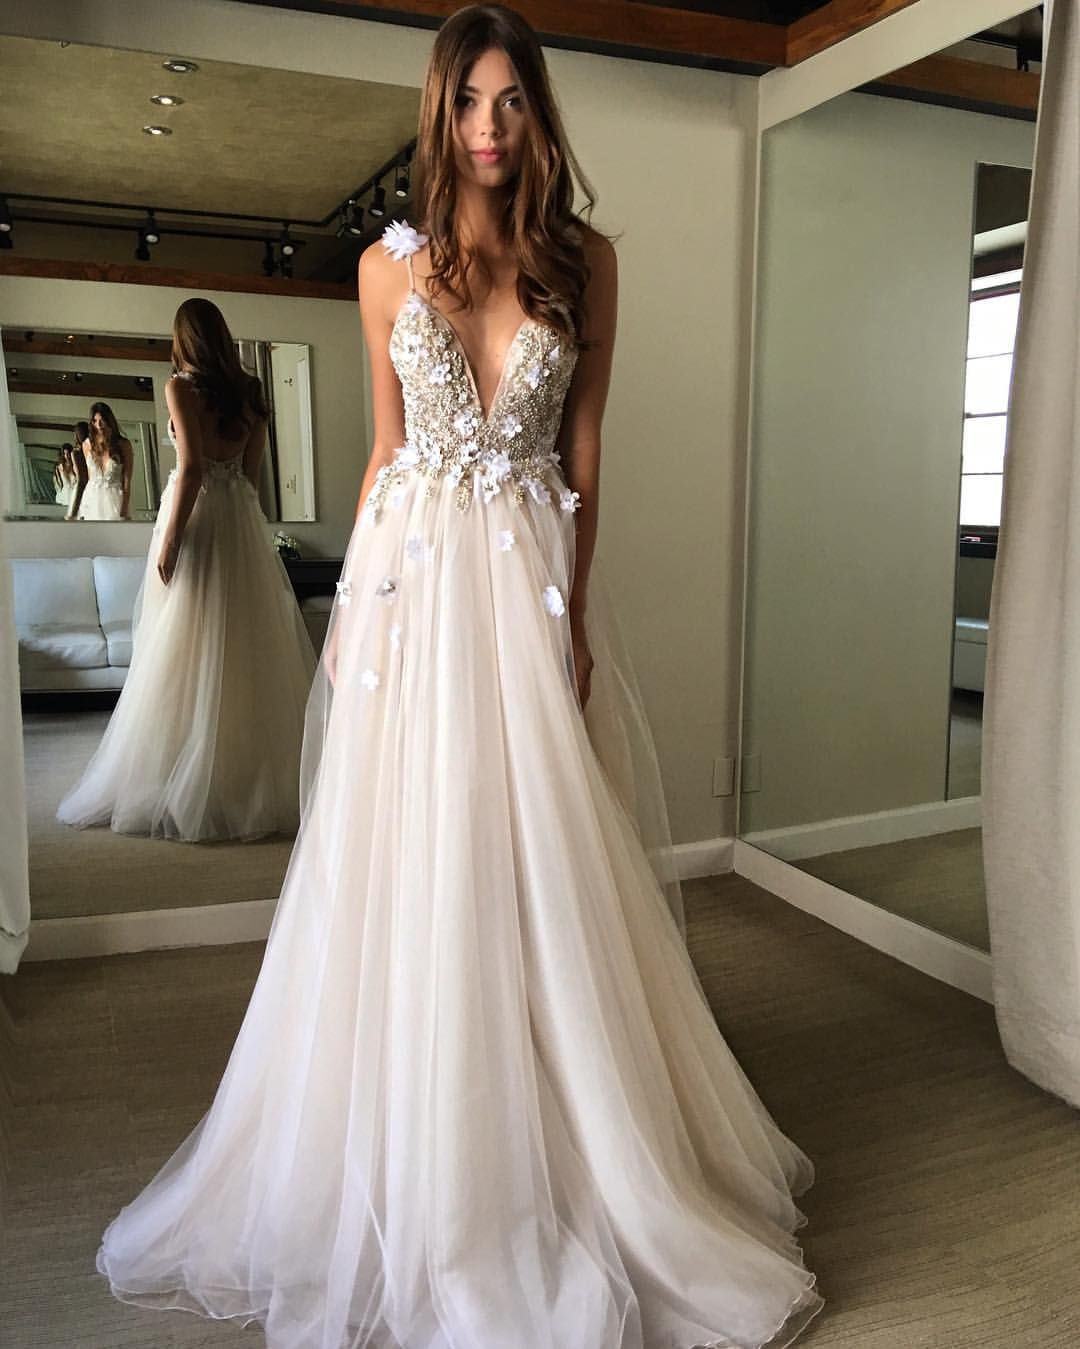 Musebyberta Nyc Trunk Show Happening This Weekend At Lfaybridal At New York New York Wedding Dresses Wedding Dresses Romantic Colorful Prom Dresses